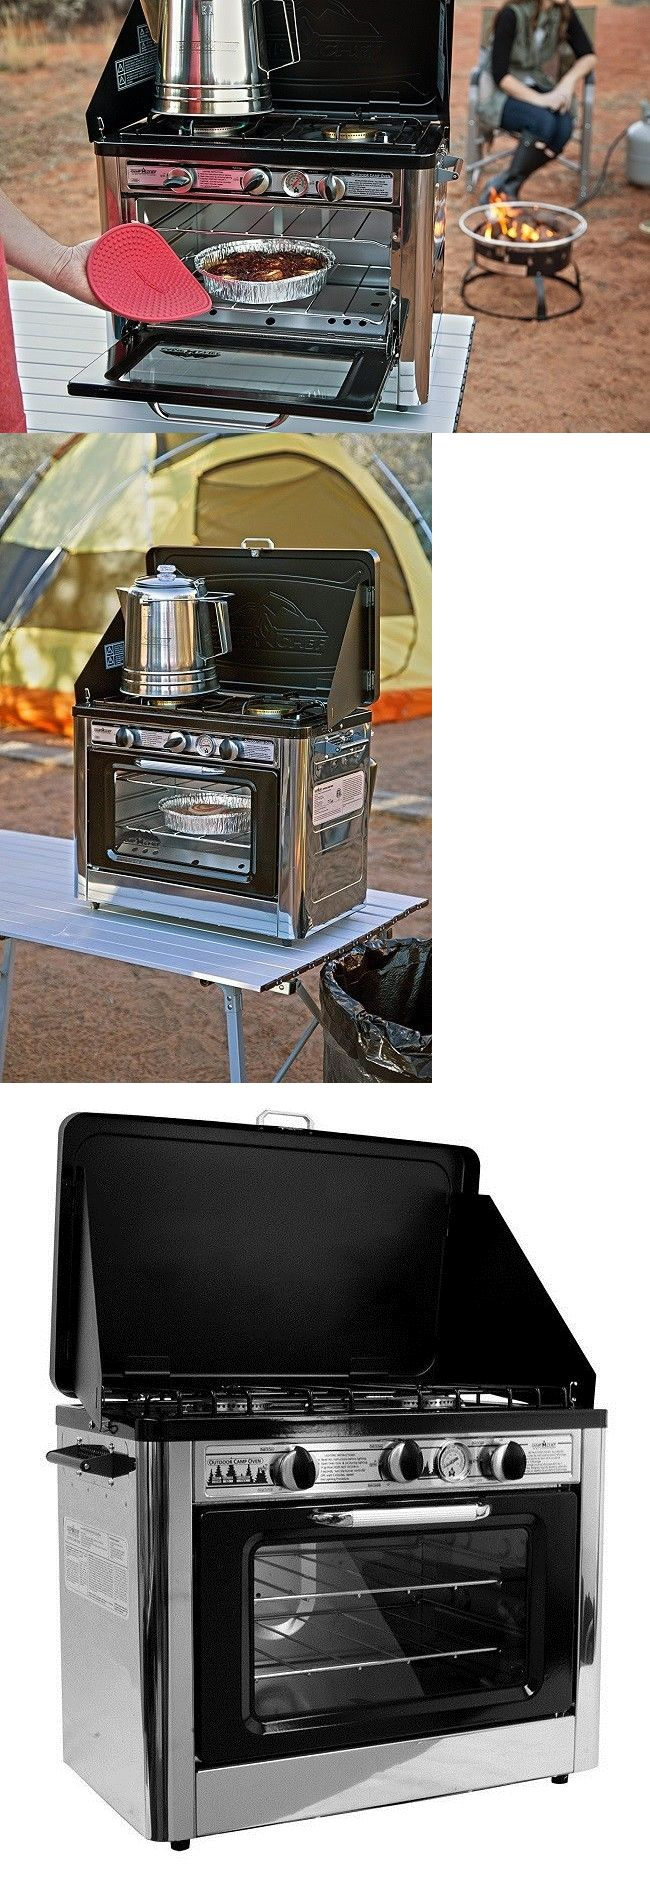 Camping ovens 181387 camp chef oven camping stove propane cook stoves outdoor cooking station baker